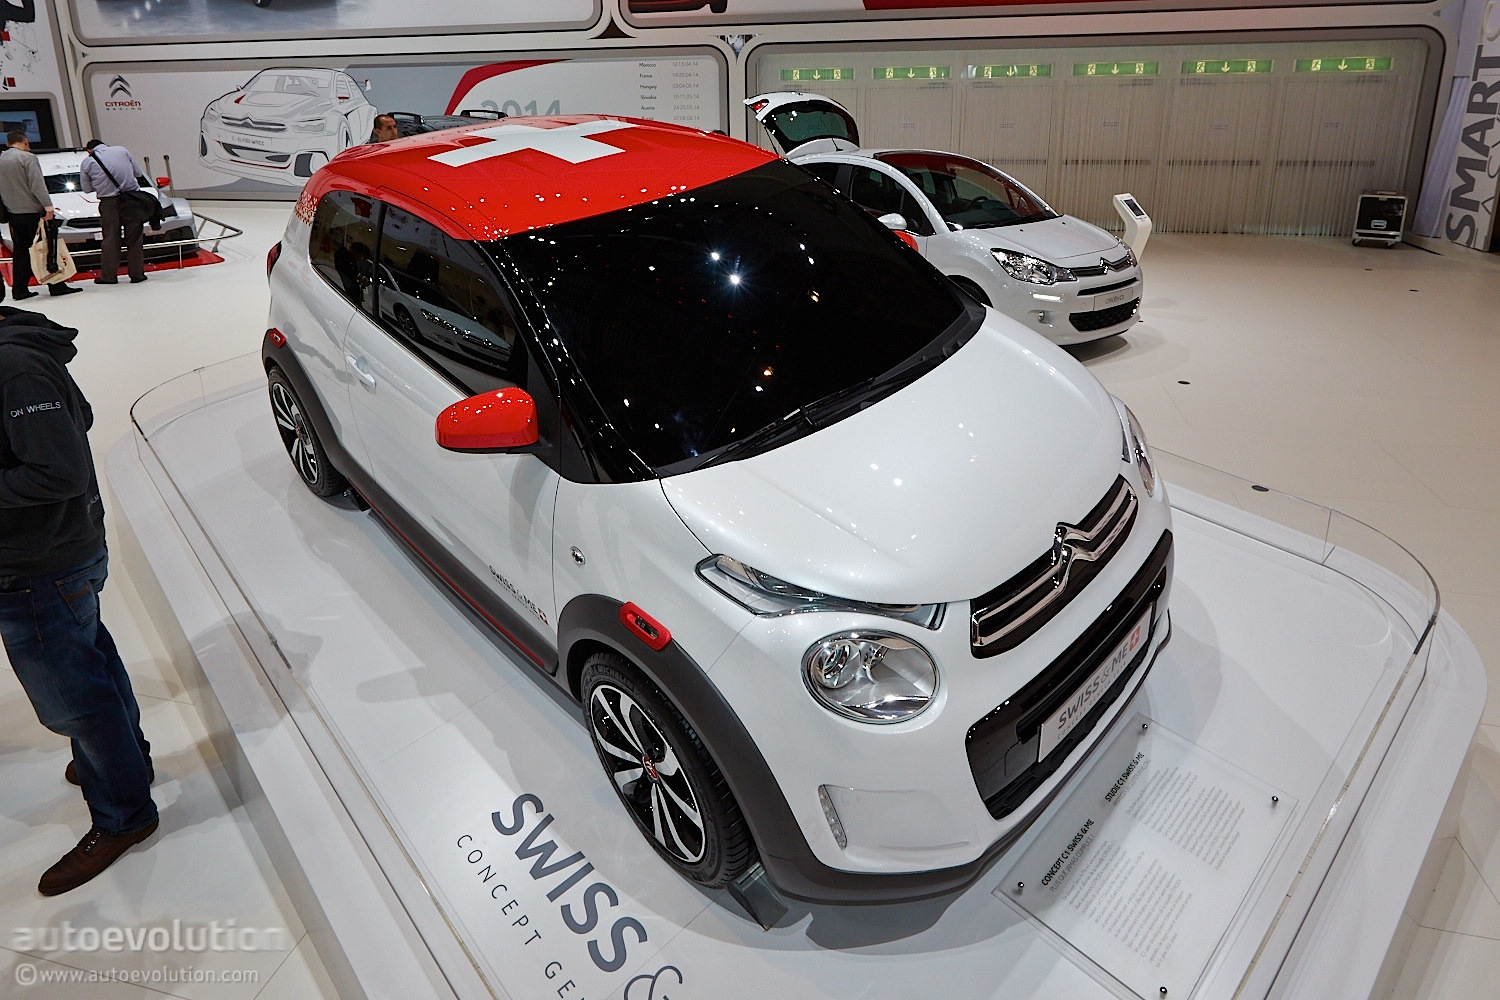 Citroen C1 Swiss Amp Me Concept Is An Army Knife In Geneva